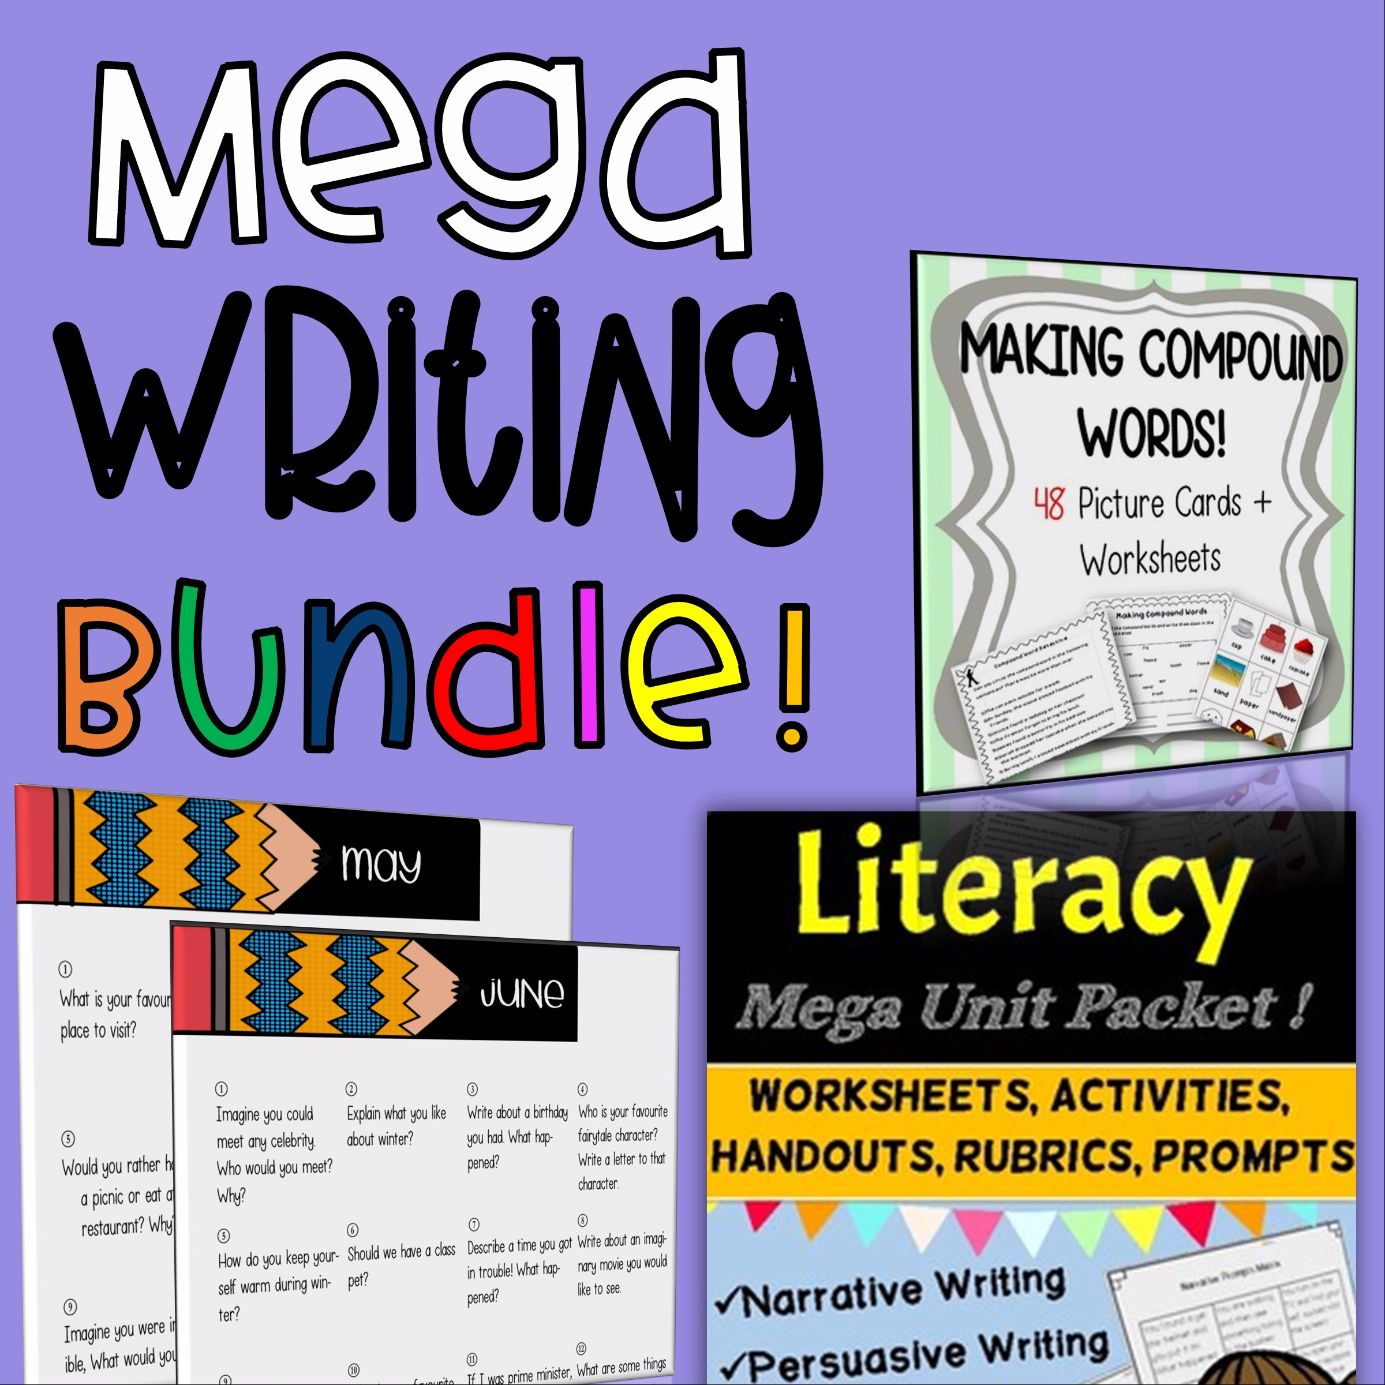 MEGA Literacy/ Writing Packet (guided lessons) AND ALSO Monthly Writing Prompts + Narrative/Persuasive Writing and Grammar + Compound Words BUNDLE